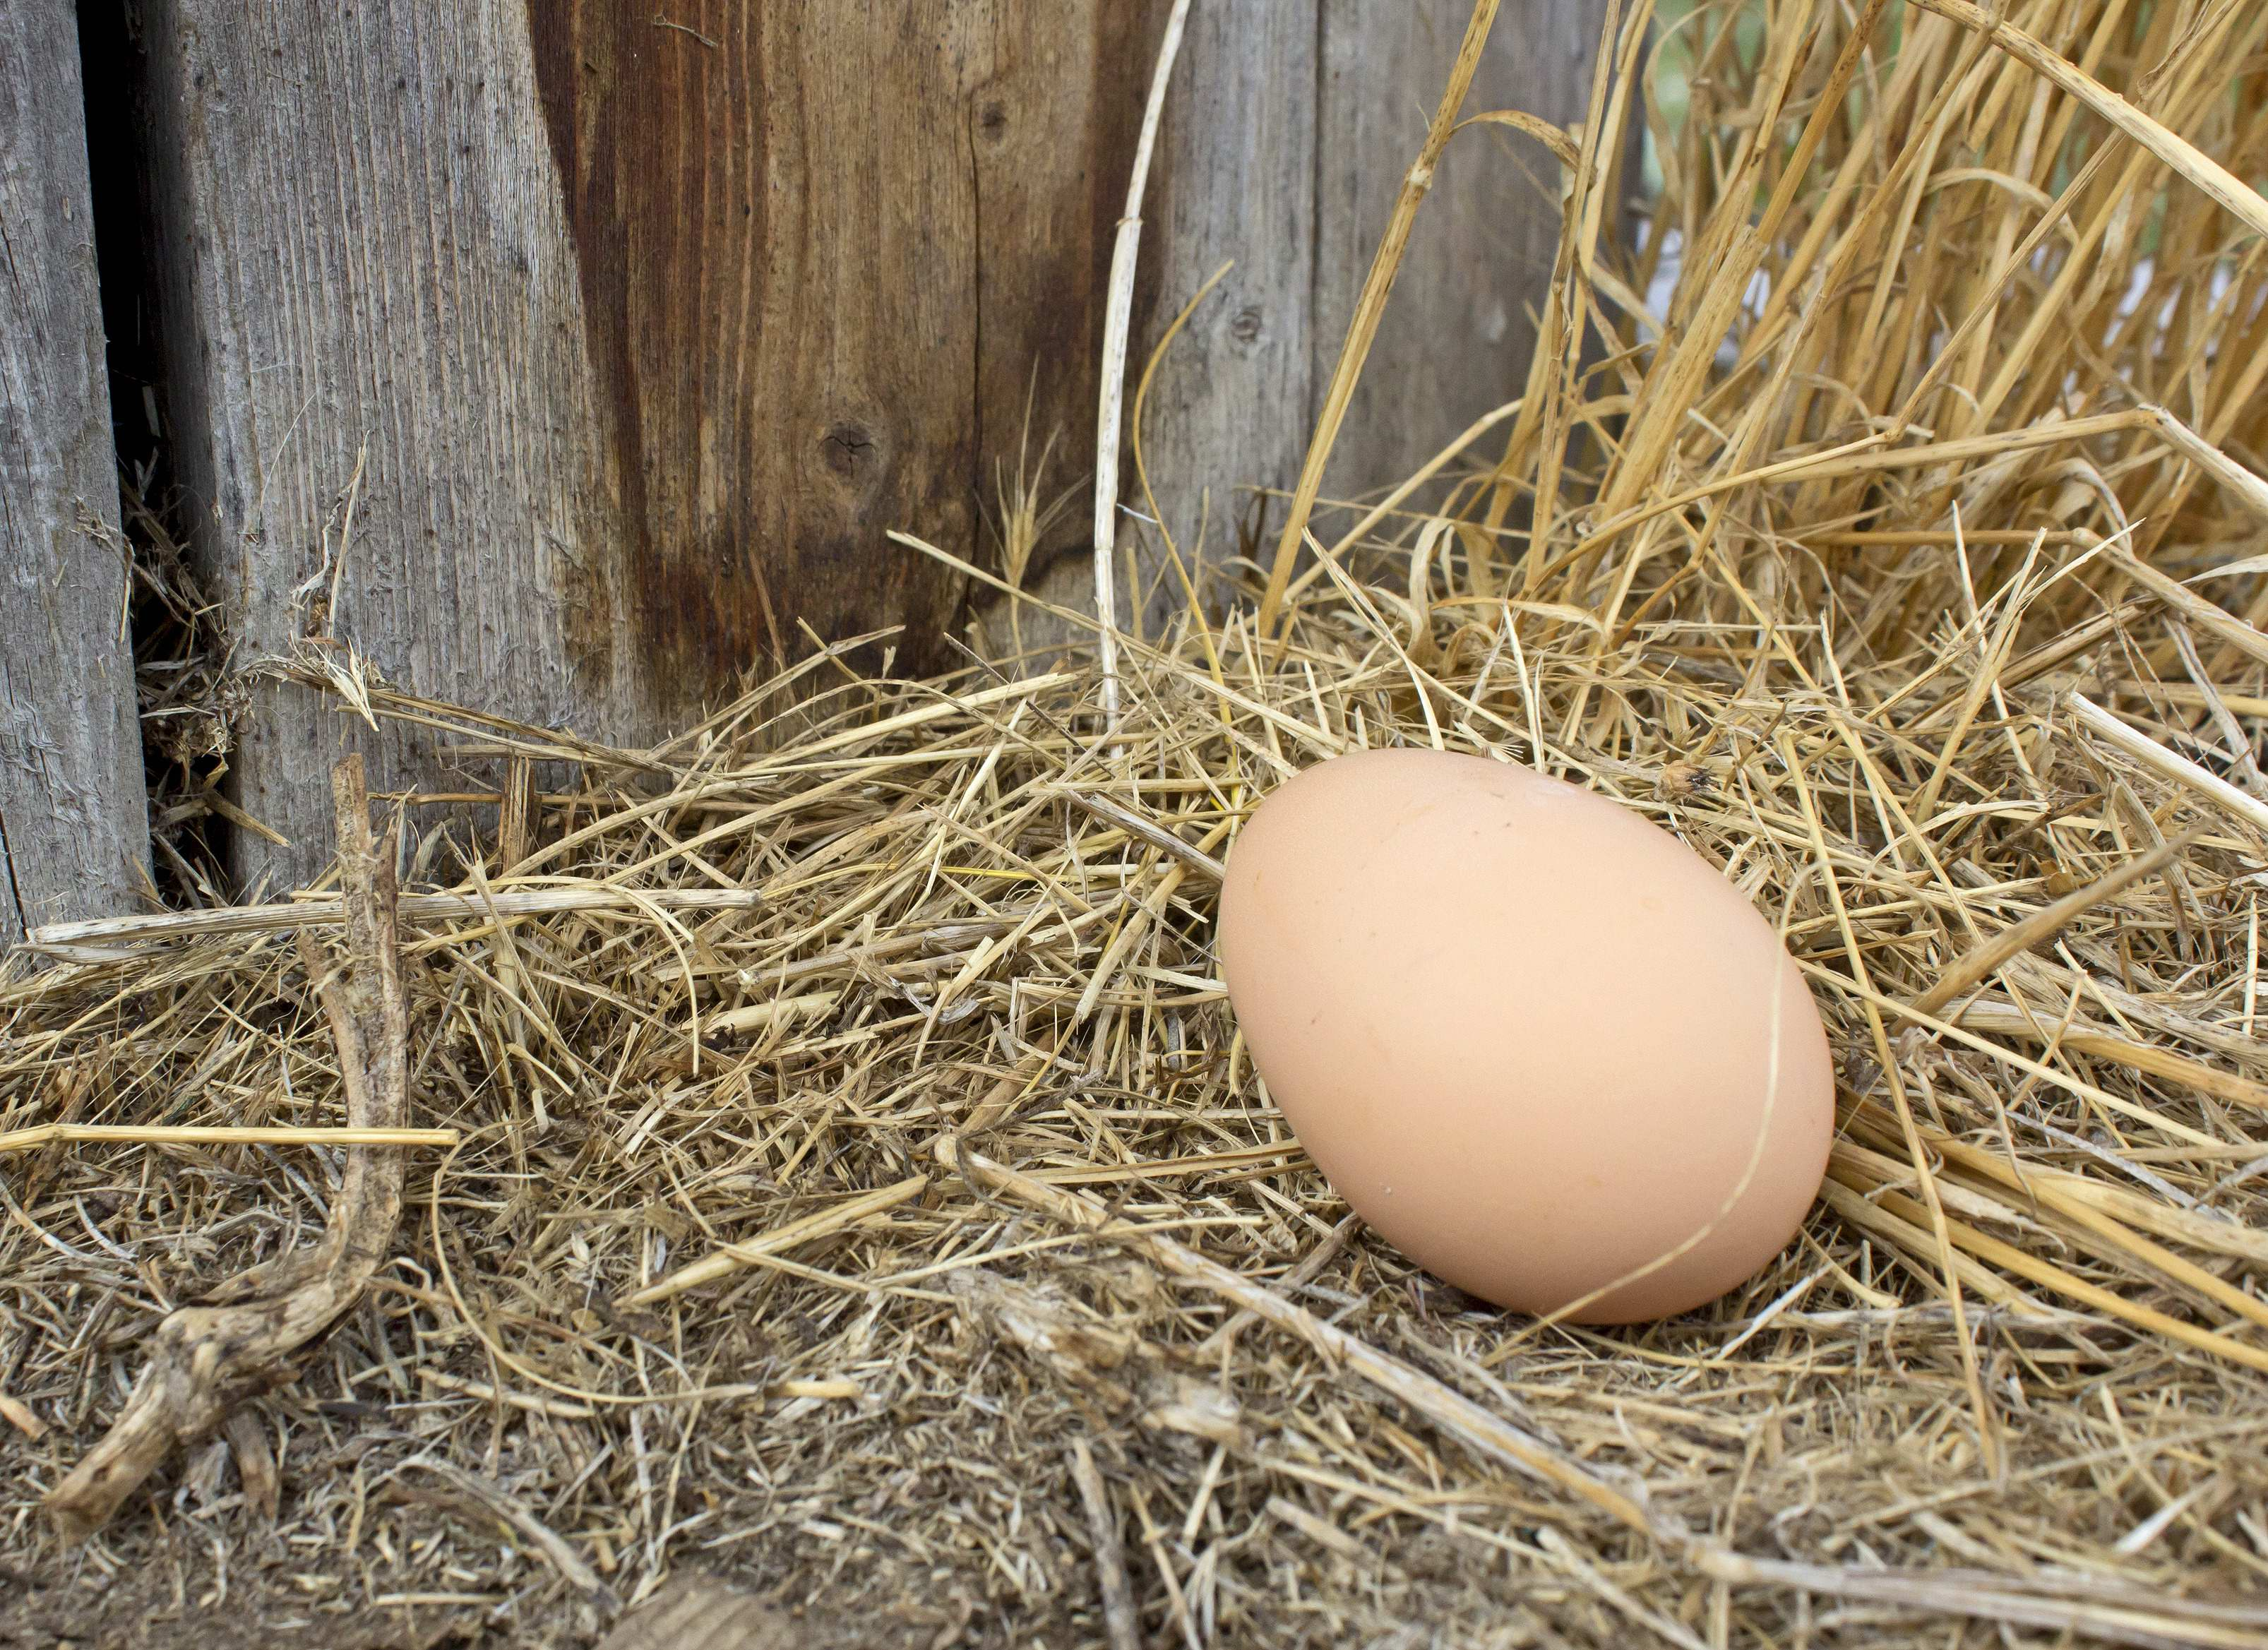 When will my chickens get interested in their nests?